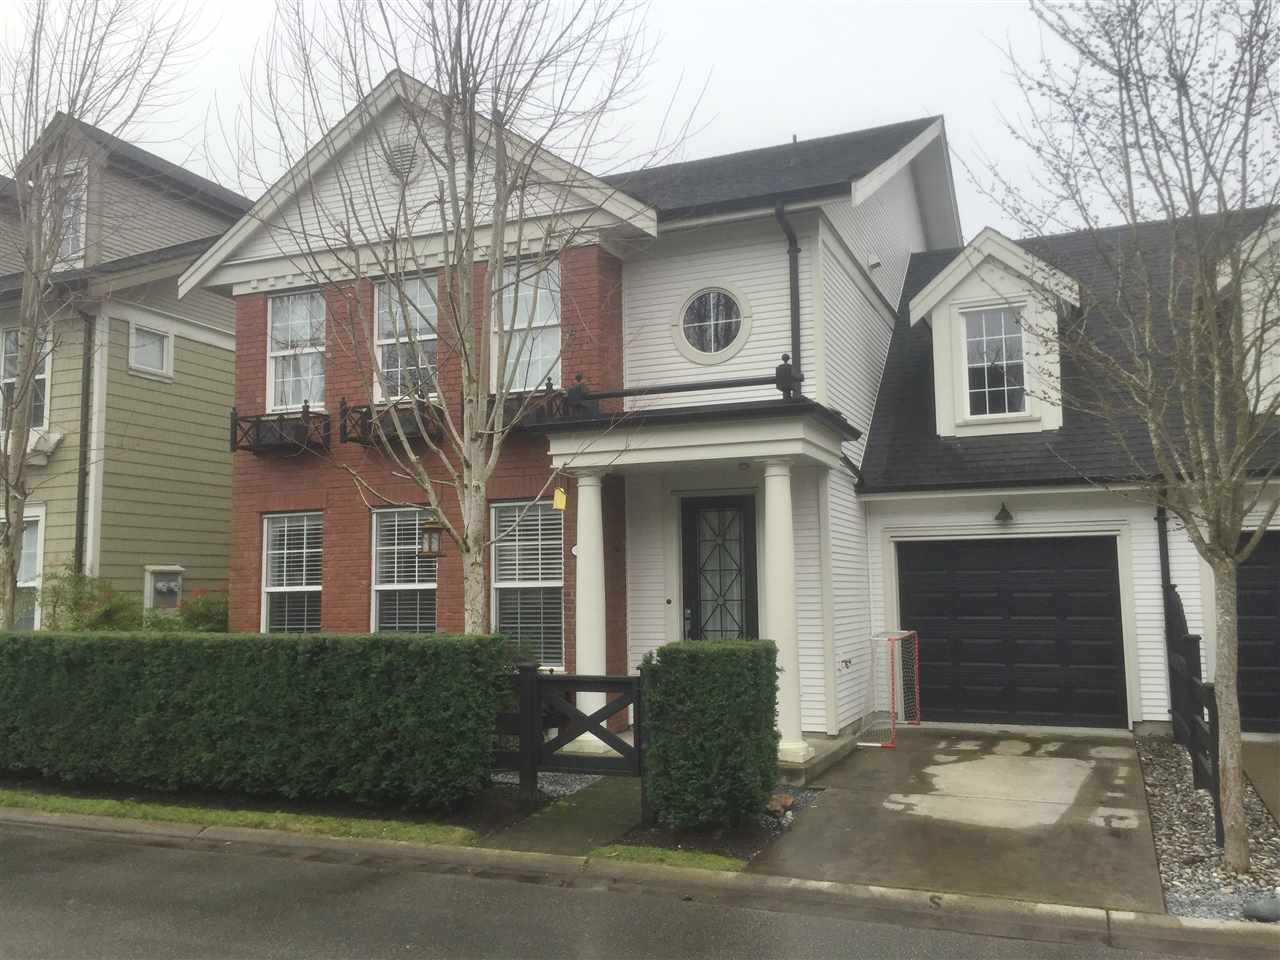 Main Photo: 21 19490 FRASER WAY in : South Meadows Townhouse for sale (Pitt Meadows)  : MLS®# R2035087